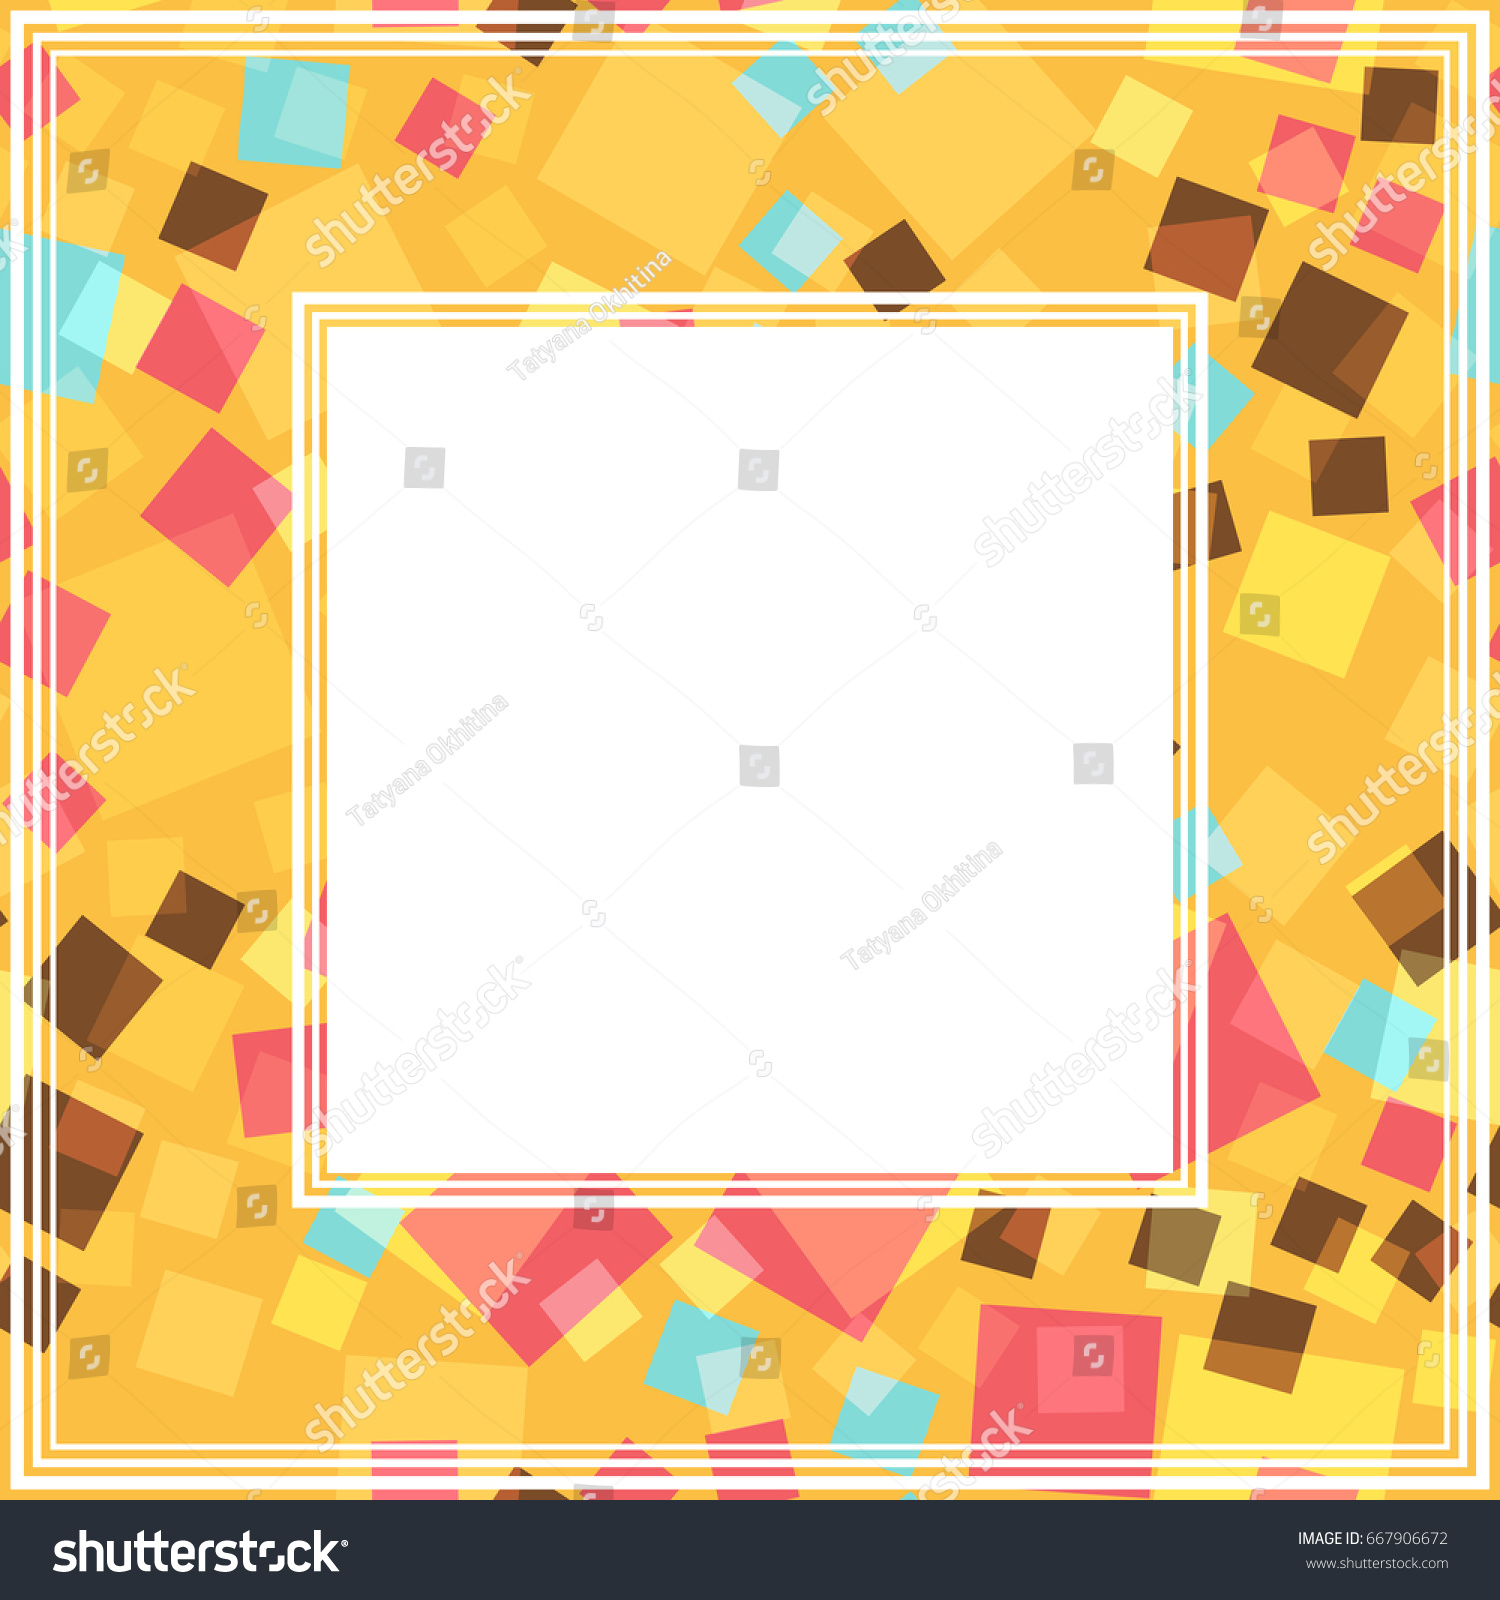 abstract mosaic frames isolated on white background templates for photo or images - Mosaic Frames